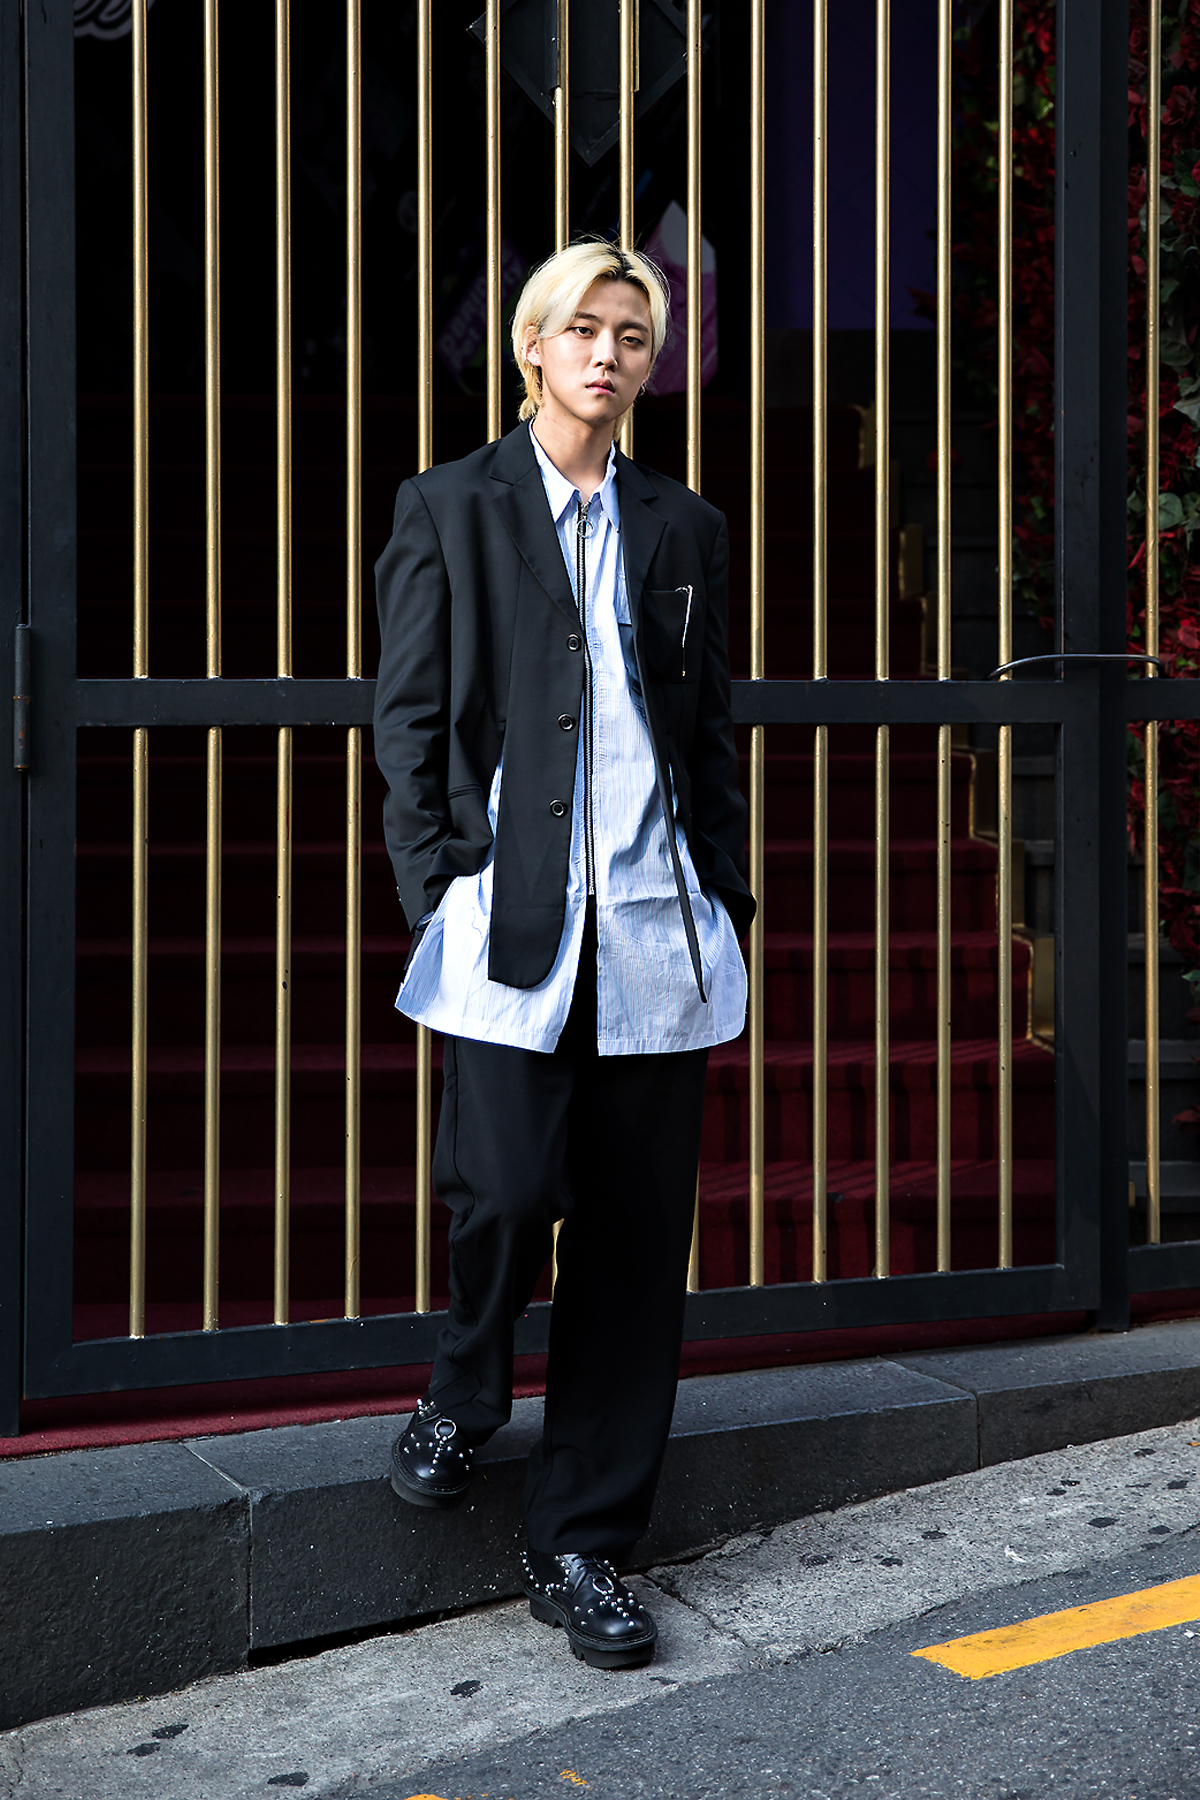 Joo Wondae, Street Fashion 2017 in Seoul.jpg